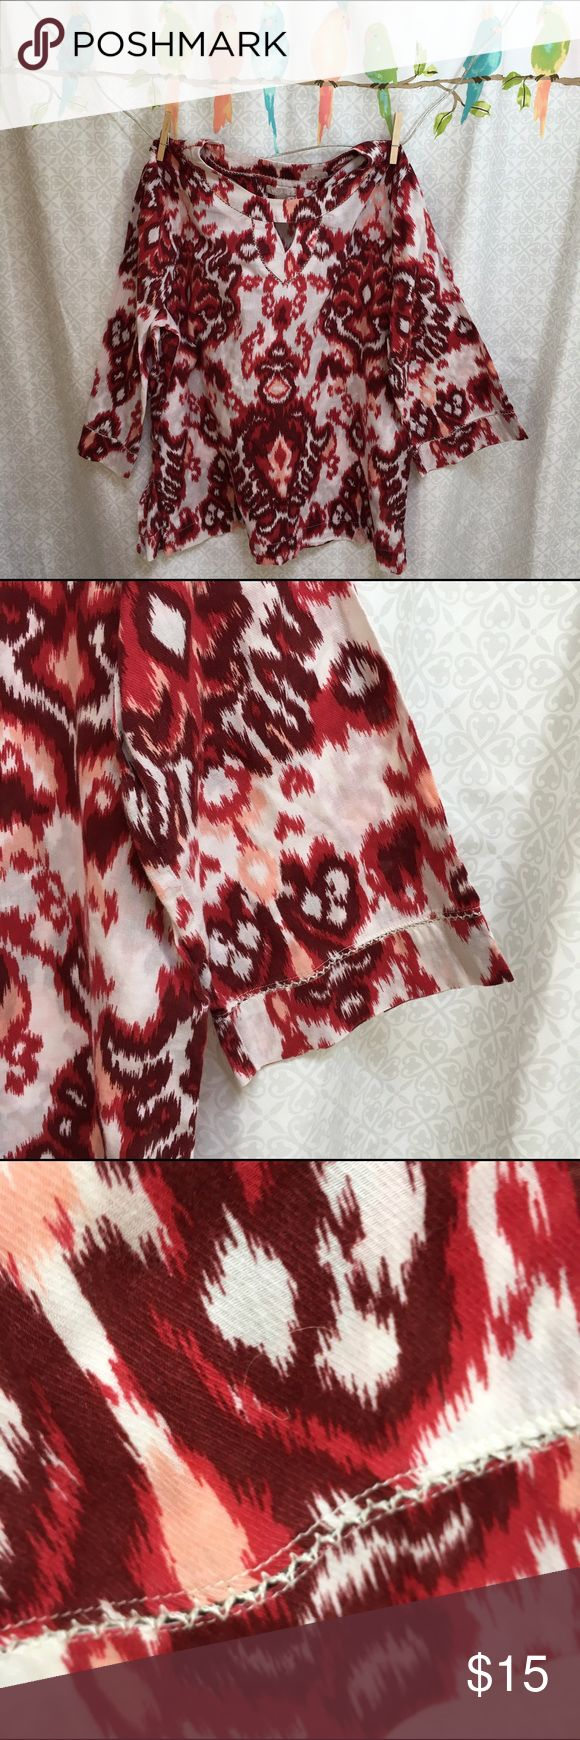 Ikat Pullover Cotton Blouse Beautiful blouse has a 48 inch bust and is 26 inches long.  Always happy to bundle.  ☺️. Wearing preowned clothing is an ethical way to have a fashionable wardrobe. Feel free to ask any questions and thank you for visiting my closet. White Stag Tops Tunics